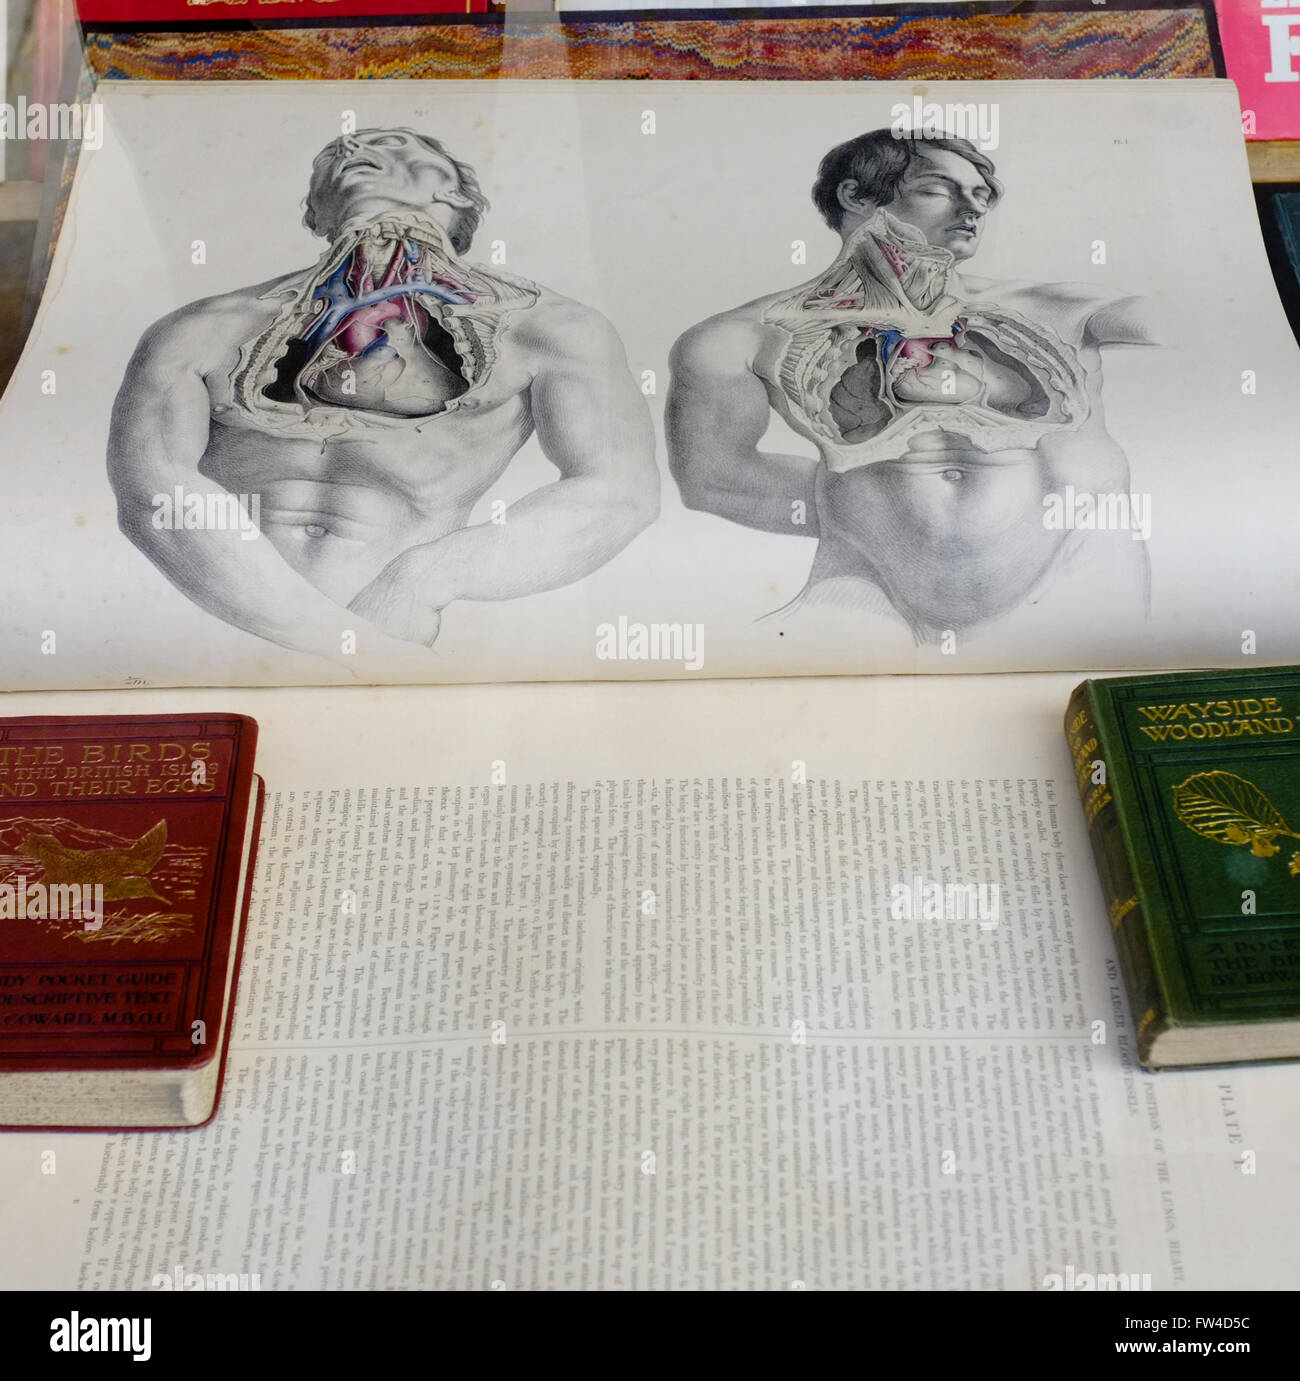 Anatomy Book Stock Photos & Anatomy Book Stock Images - Alamy